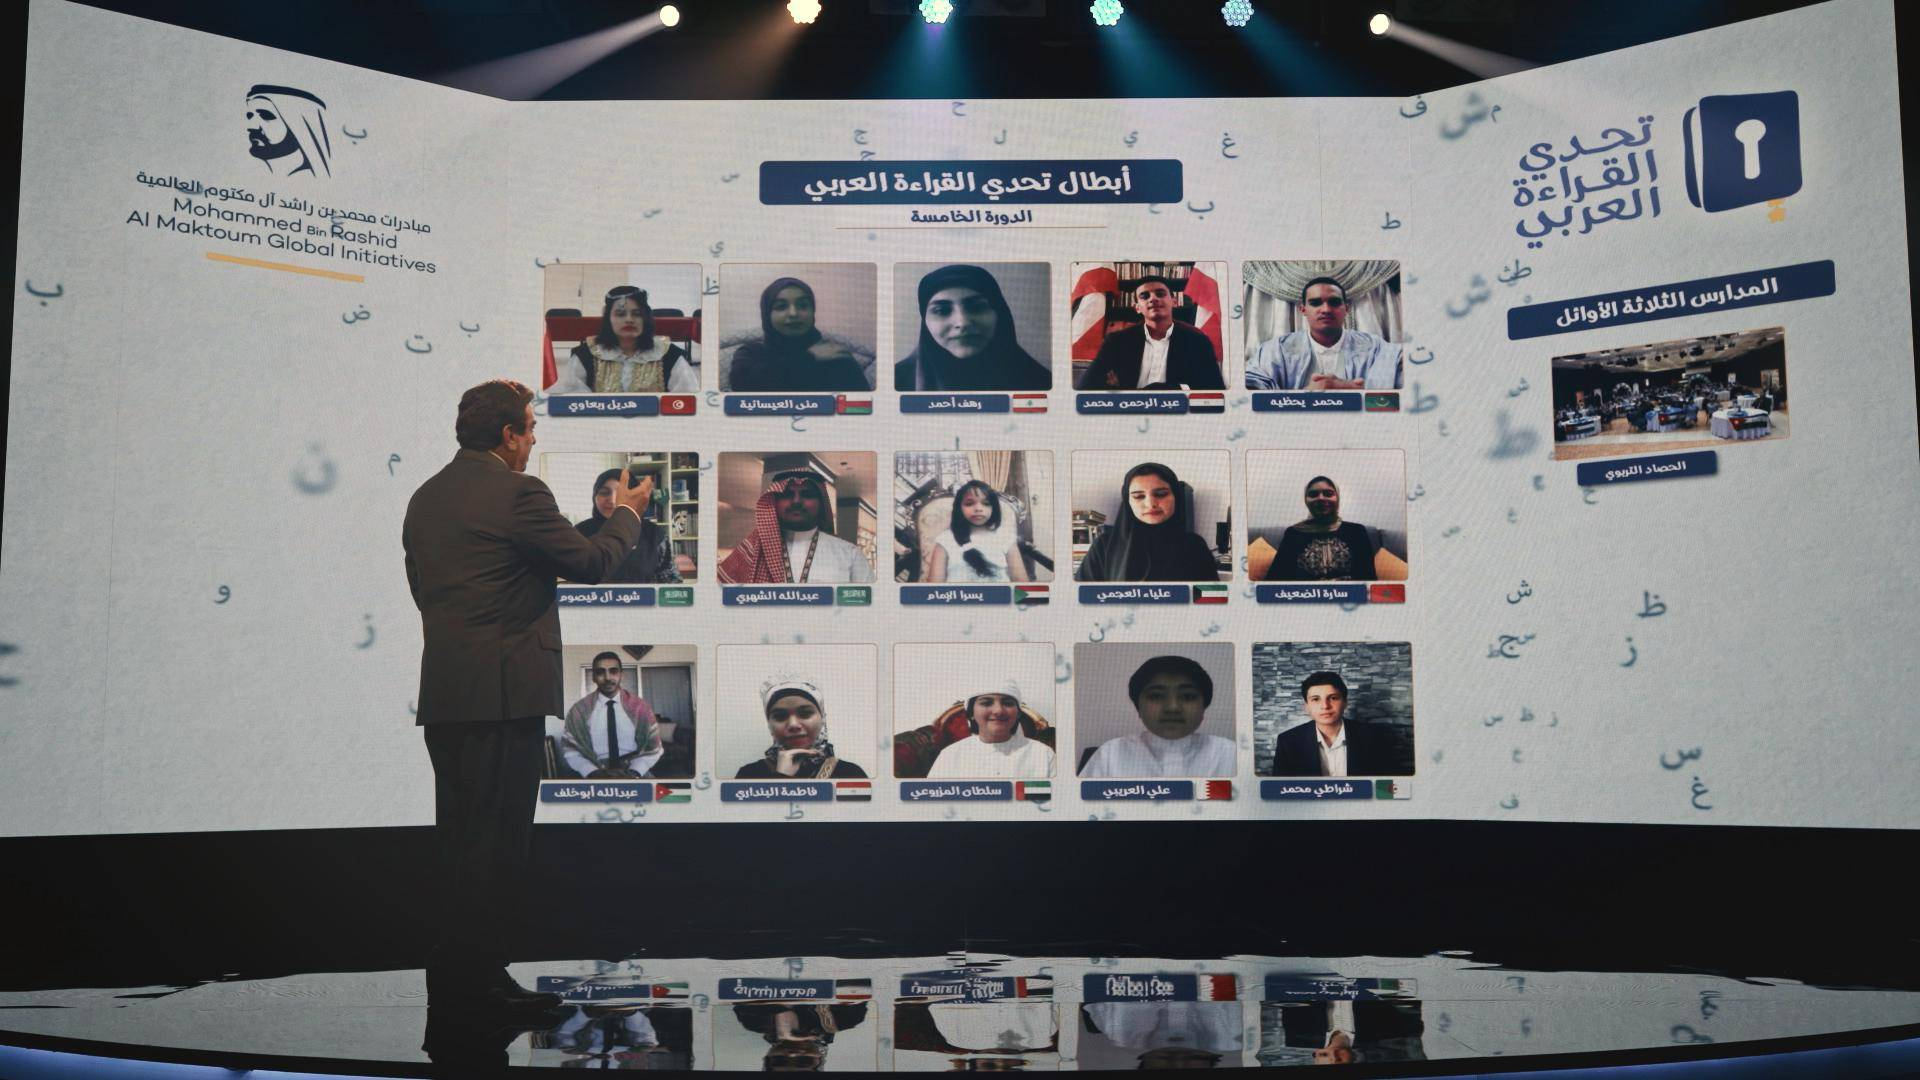 Arab Reading Challenge: Winners of prizes worth Dh11 million announced